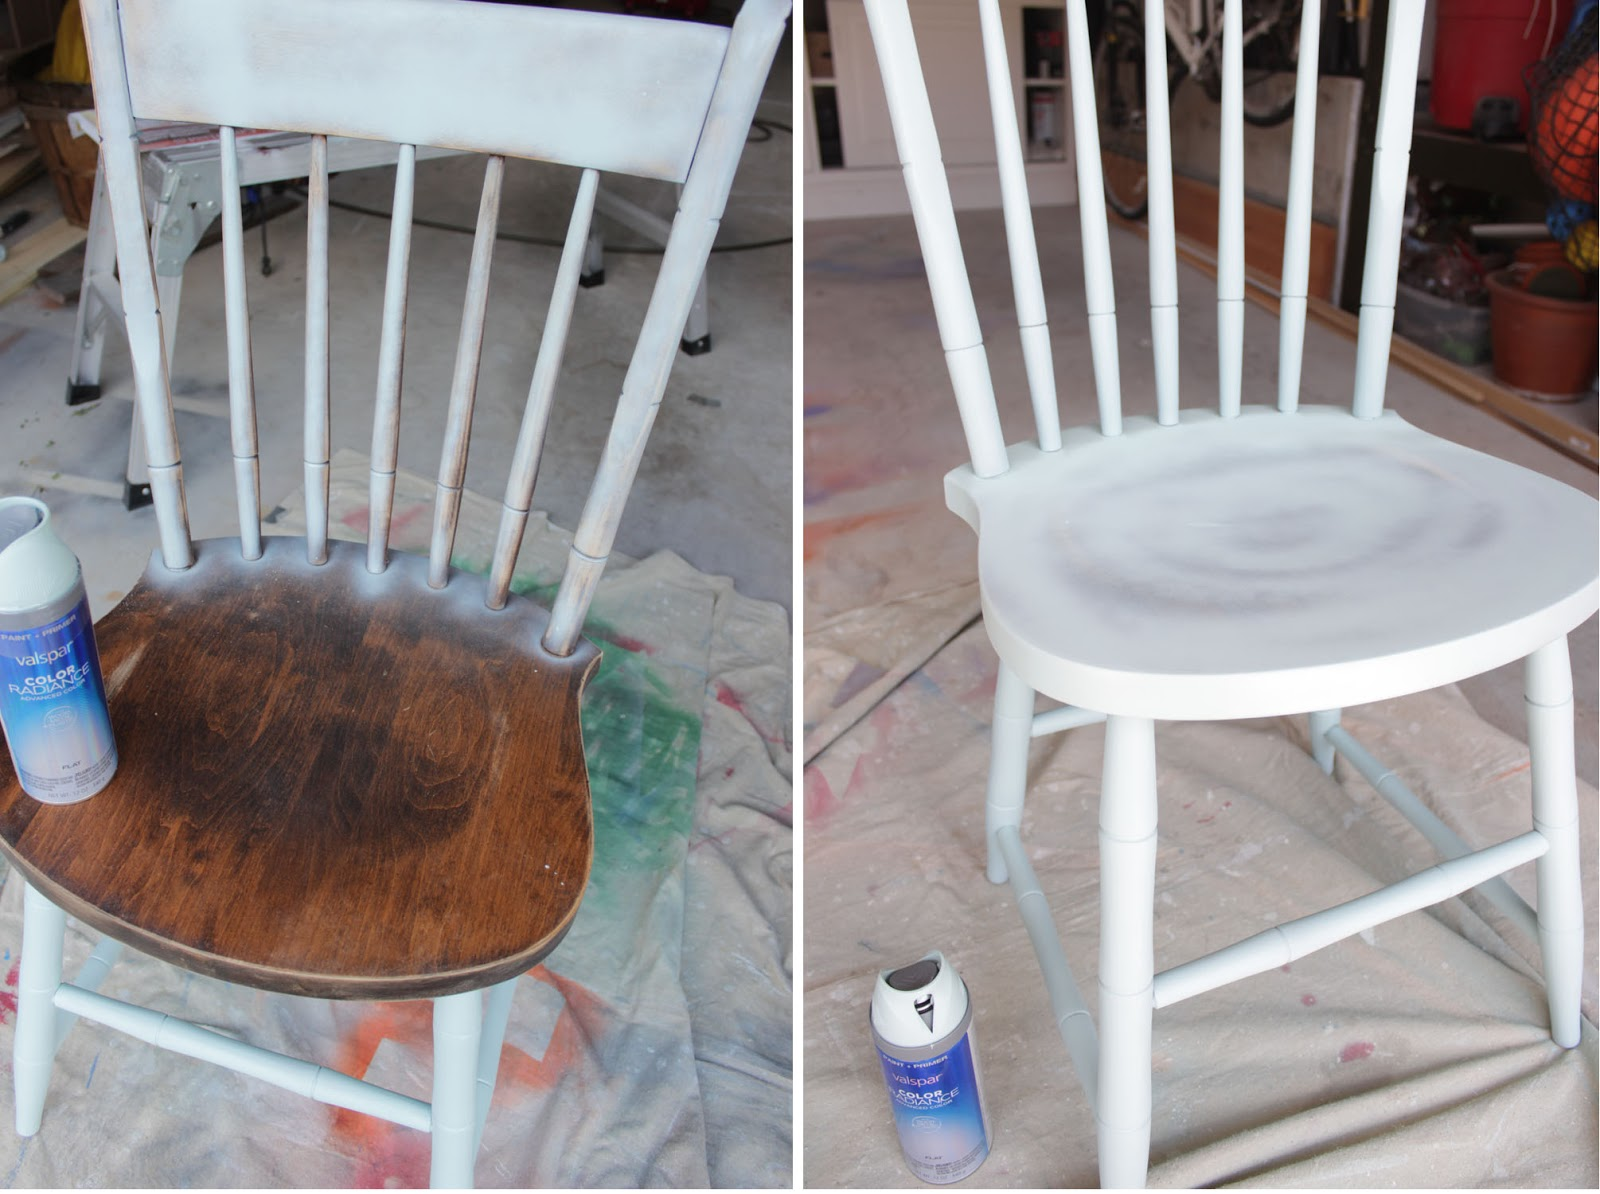 & Spray Painted Chairs - Remodelando la Casa